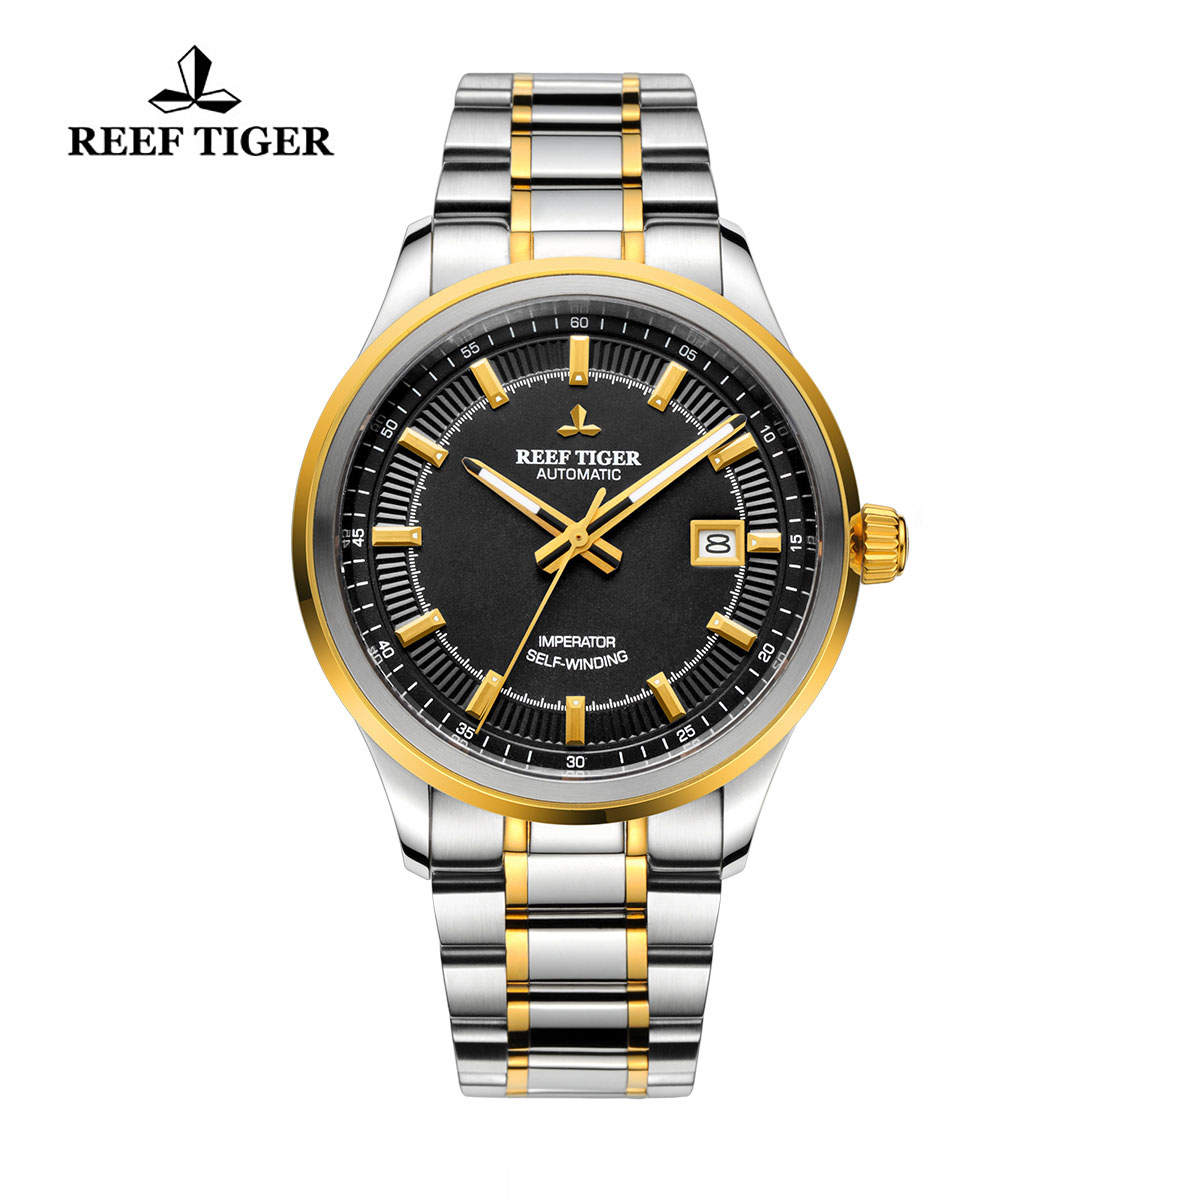 Reef Tiger Imperator Dress Watch Automatic Two Tone Black Dial RGA8015-GBT